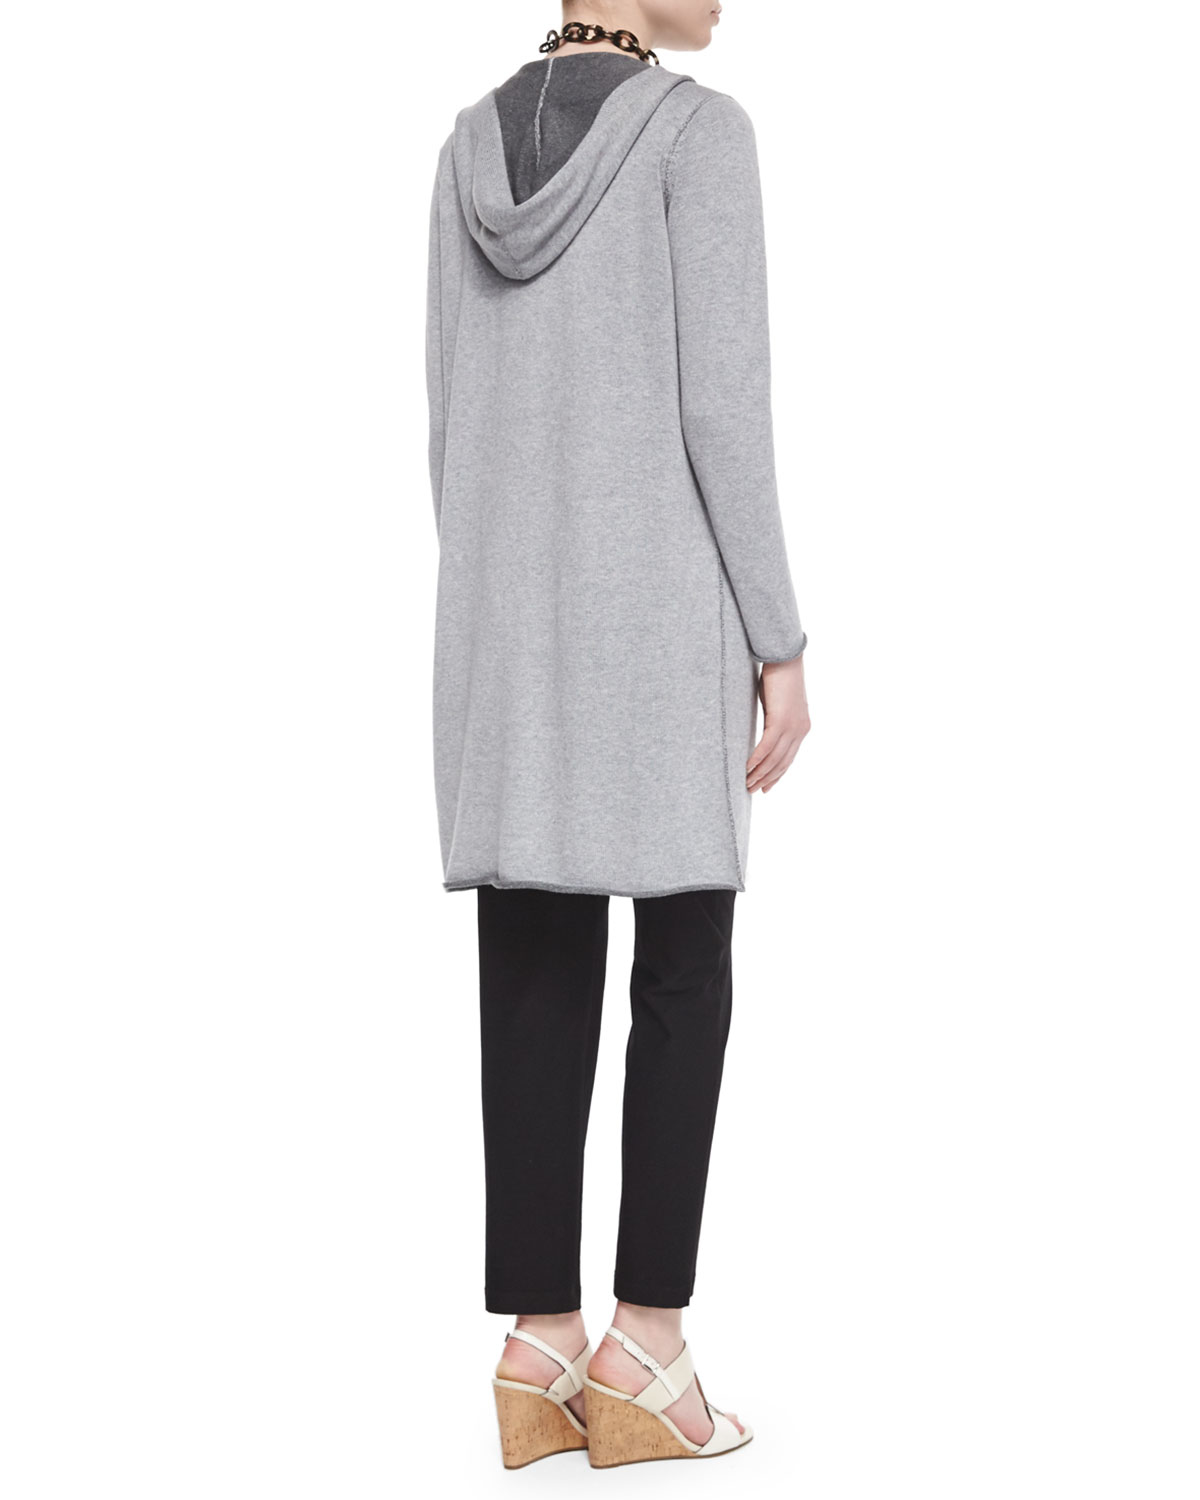 Lyst - Eileen Fisher Hooded Organic Cotton Long Cardigan in Gray af2b915dc